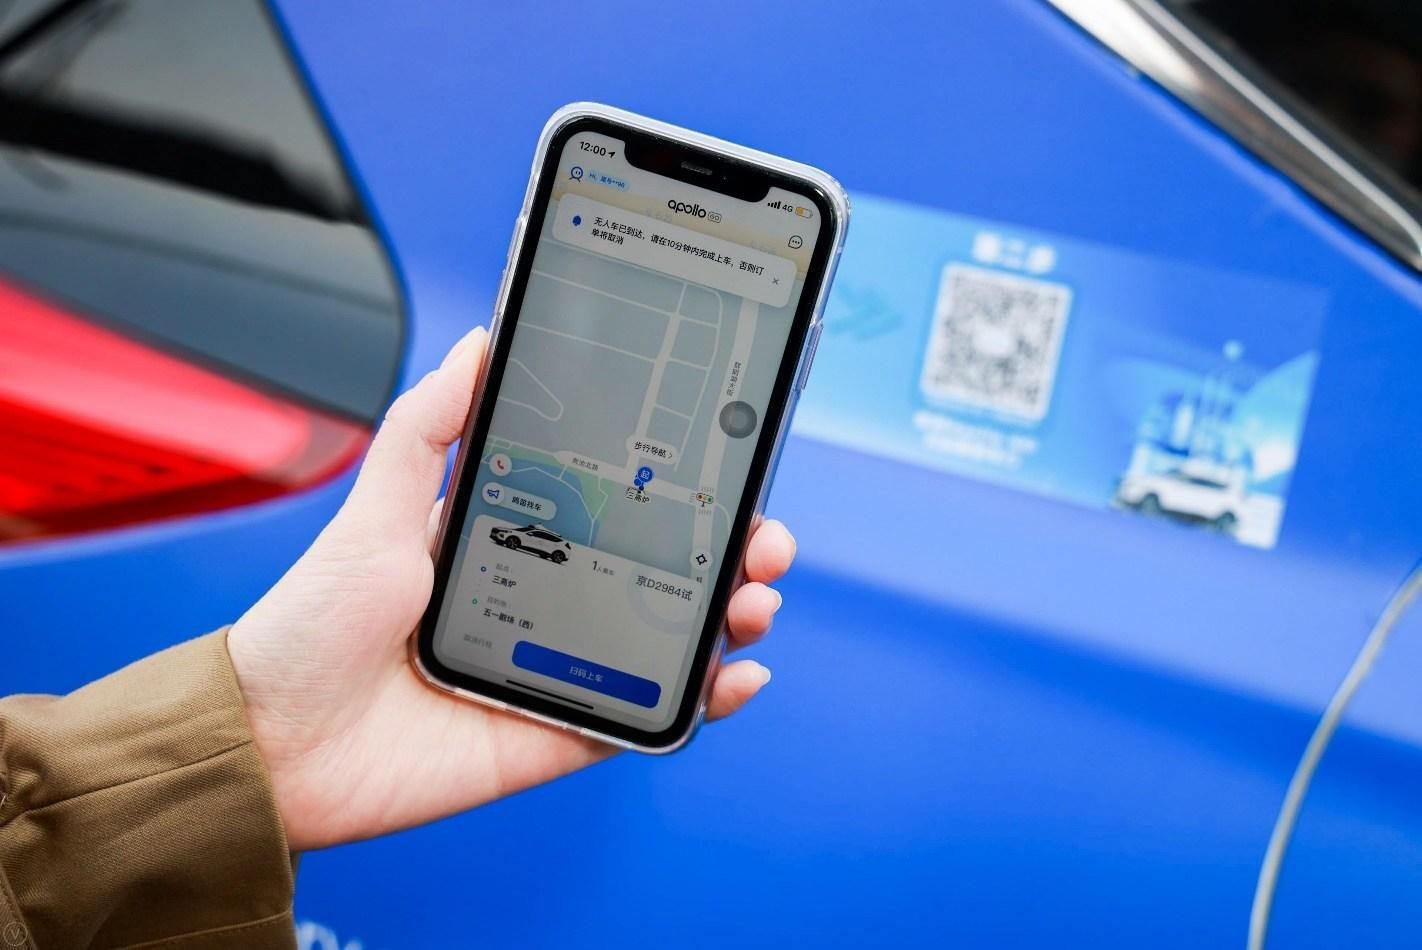 Users will be able to hail Baidu's robotaxis via a smartphone app